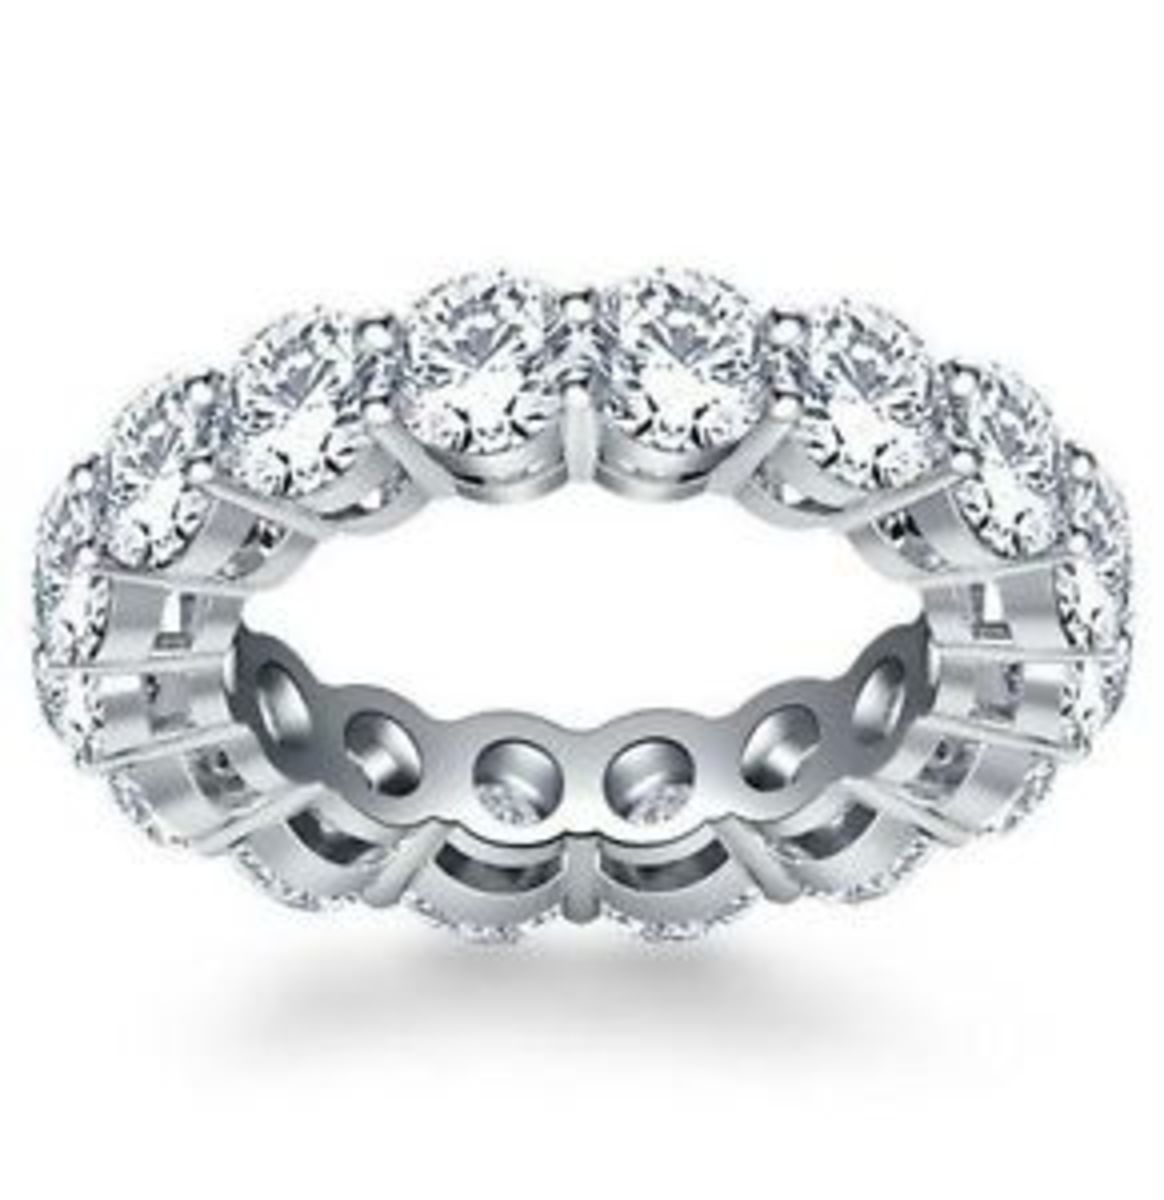 See how tough it would be to size an eternity band?